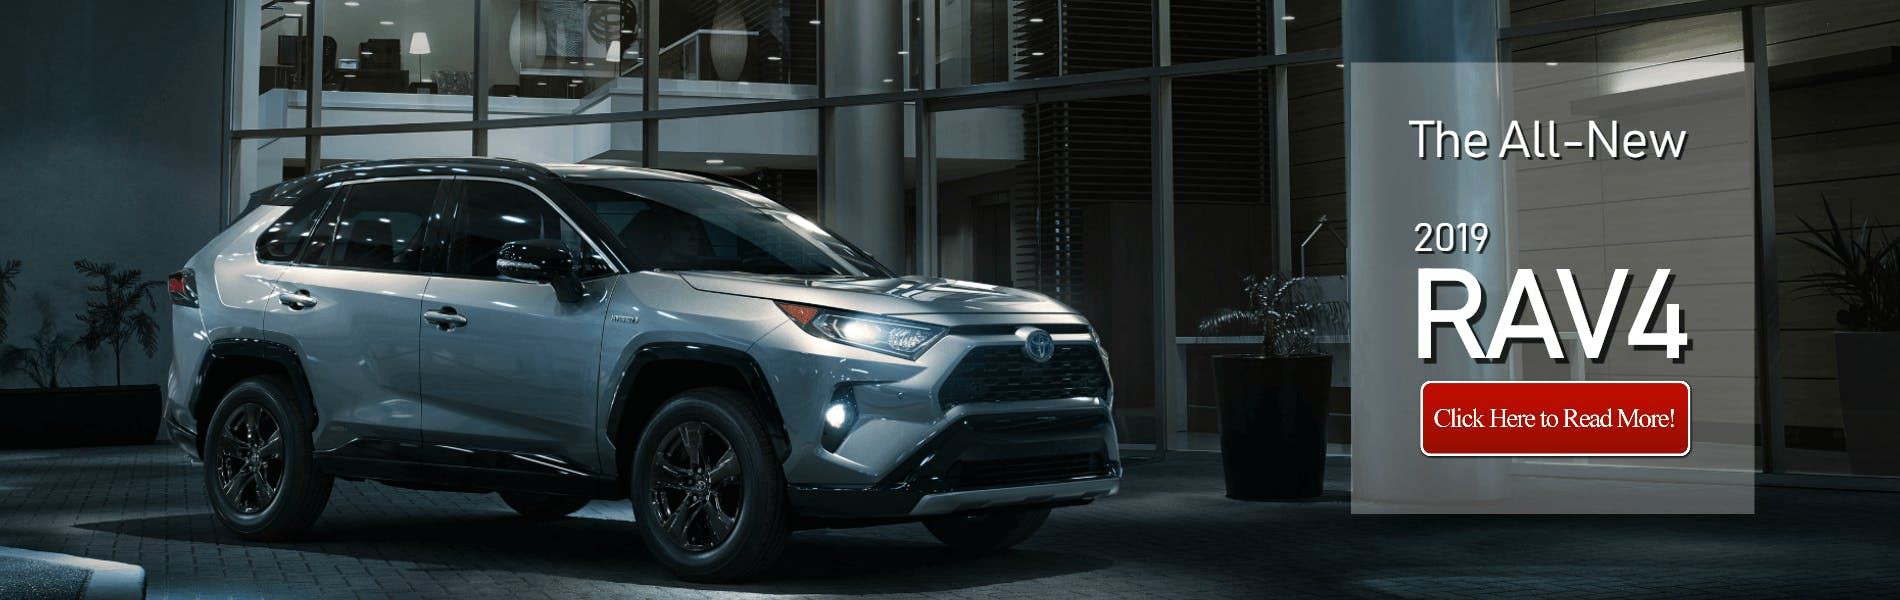 2019 Toyota RAV4: Rugged Styling, Well Equipped, More Off-road Capabilty >> 2019 Toyota Rav4